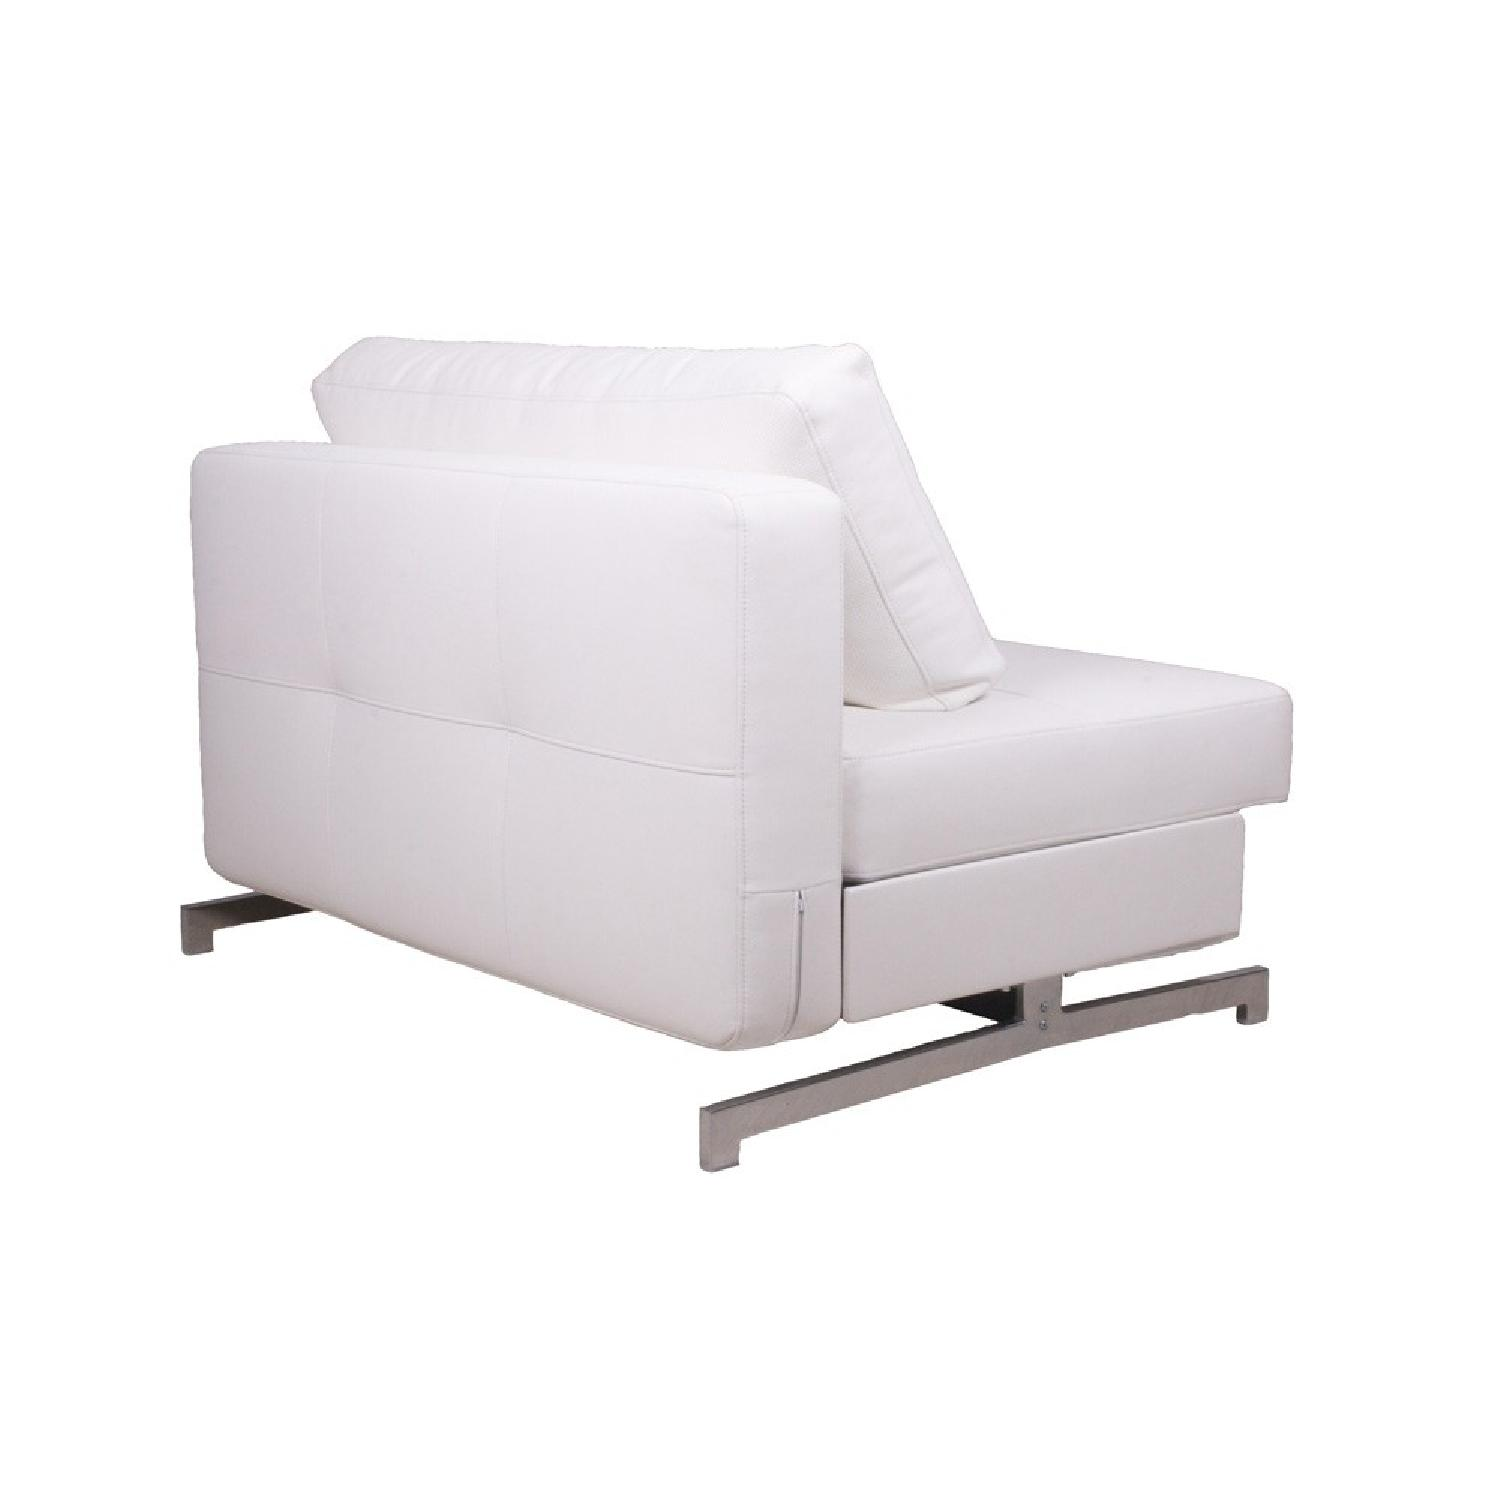 The Smart Sofa White JR Sofa Bed - image-3